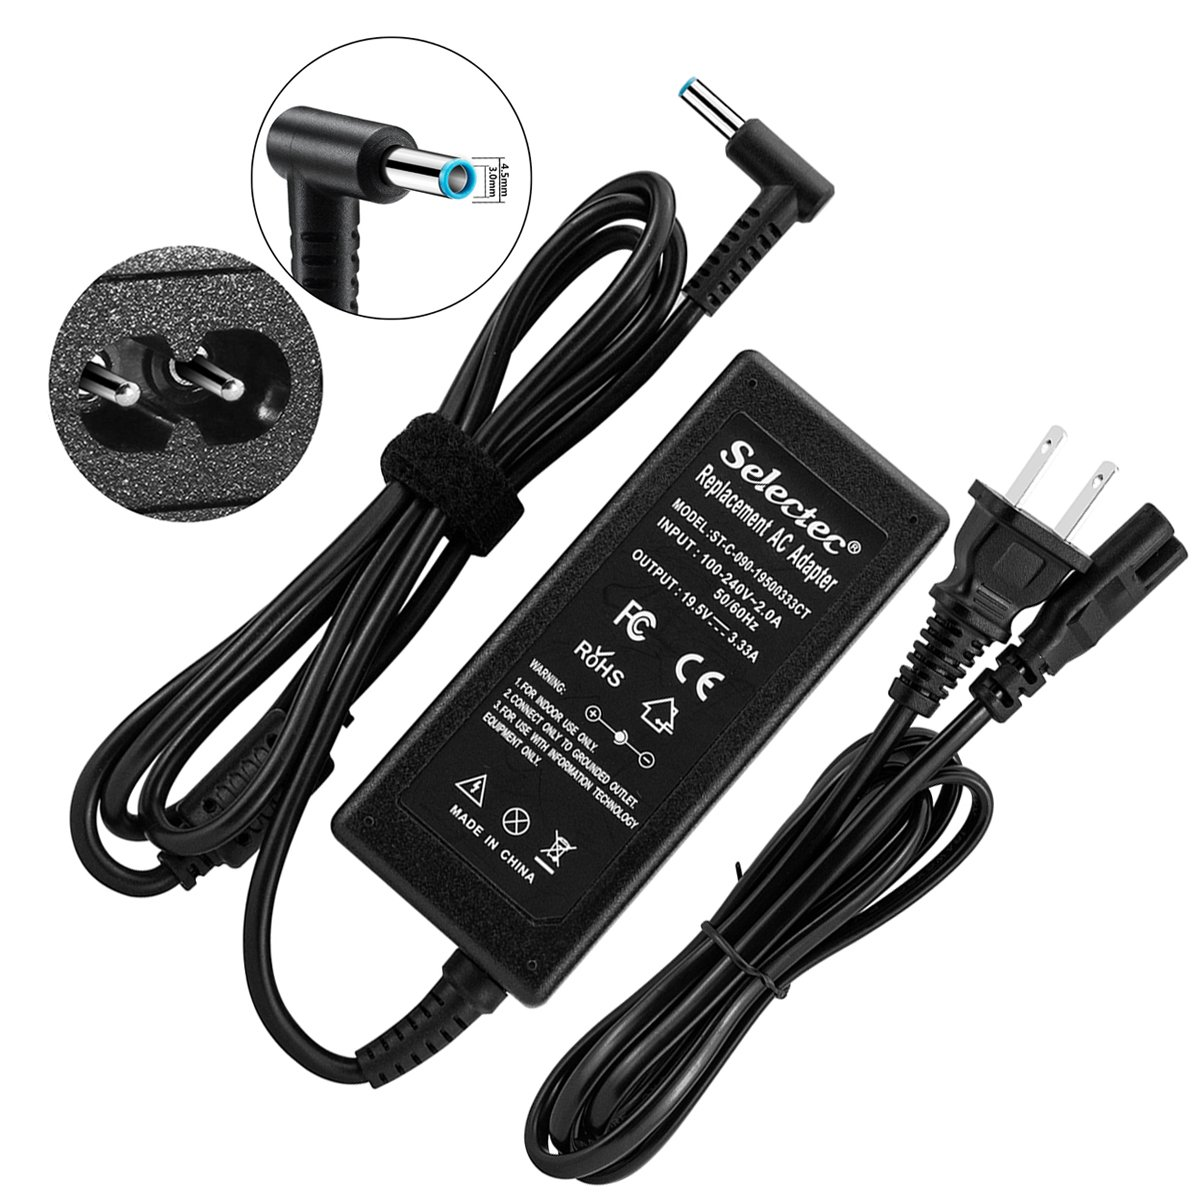 Selectec AC Adapter Charger For HP Stream 11 13 14 15 Notebook PC Series Power Cord Supply by Selectec (Image #1)